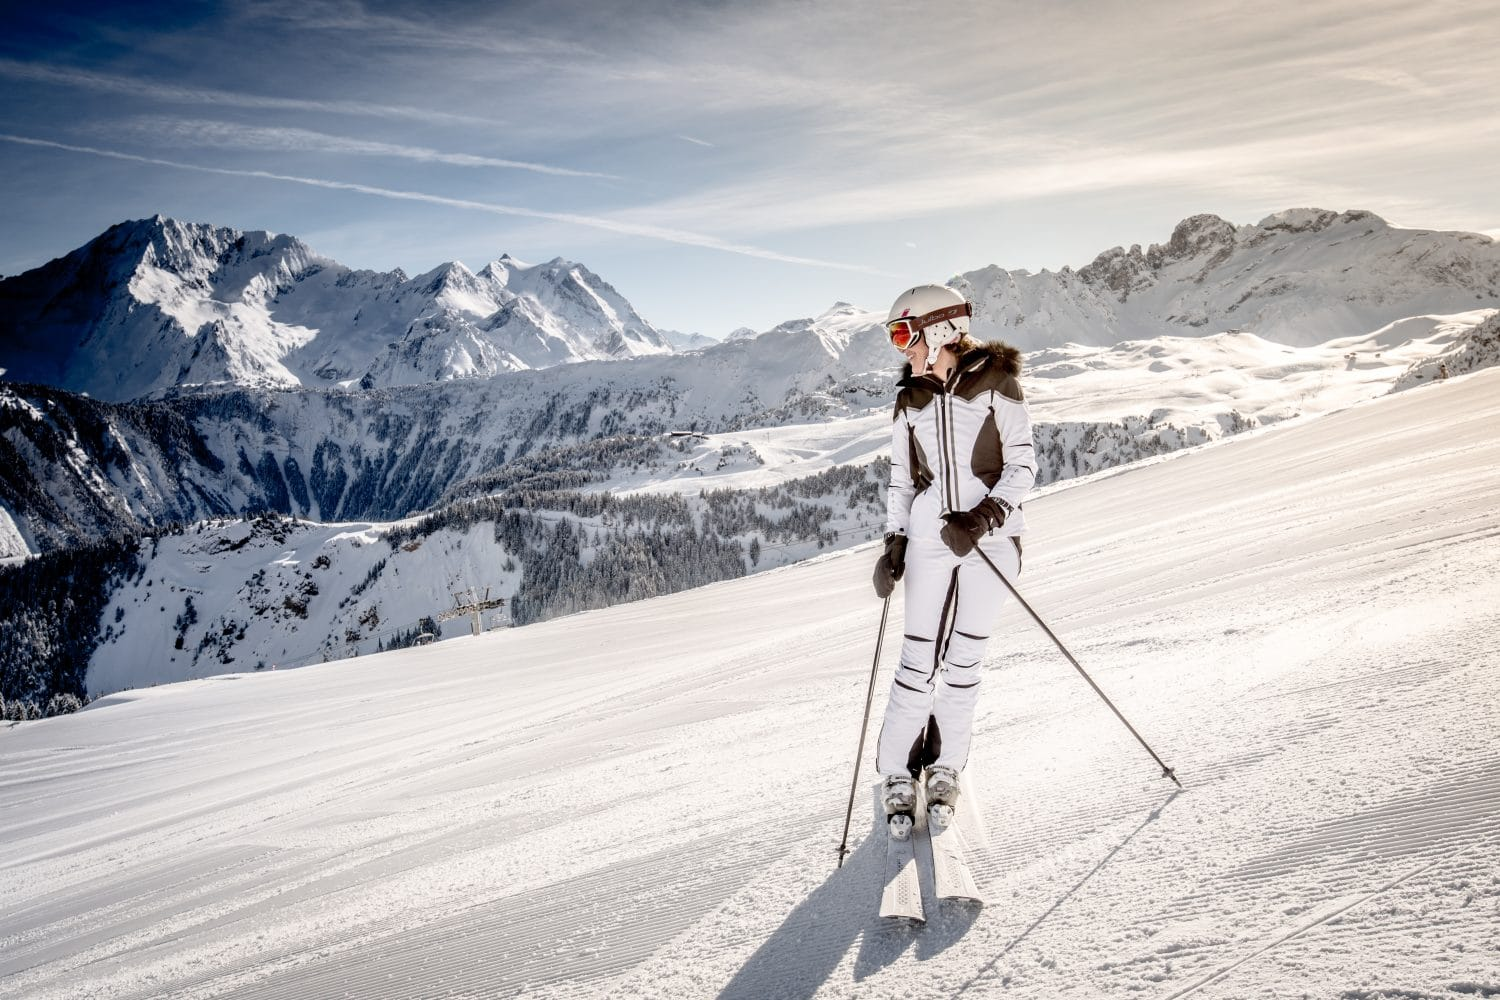 The Chalet Edit Concierge Service